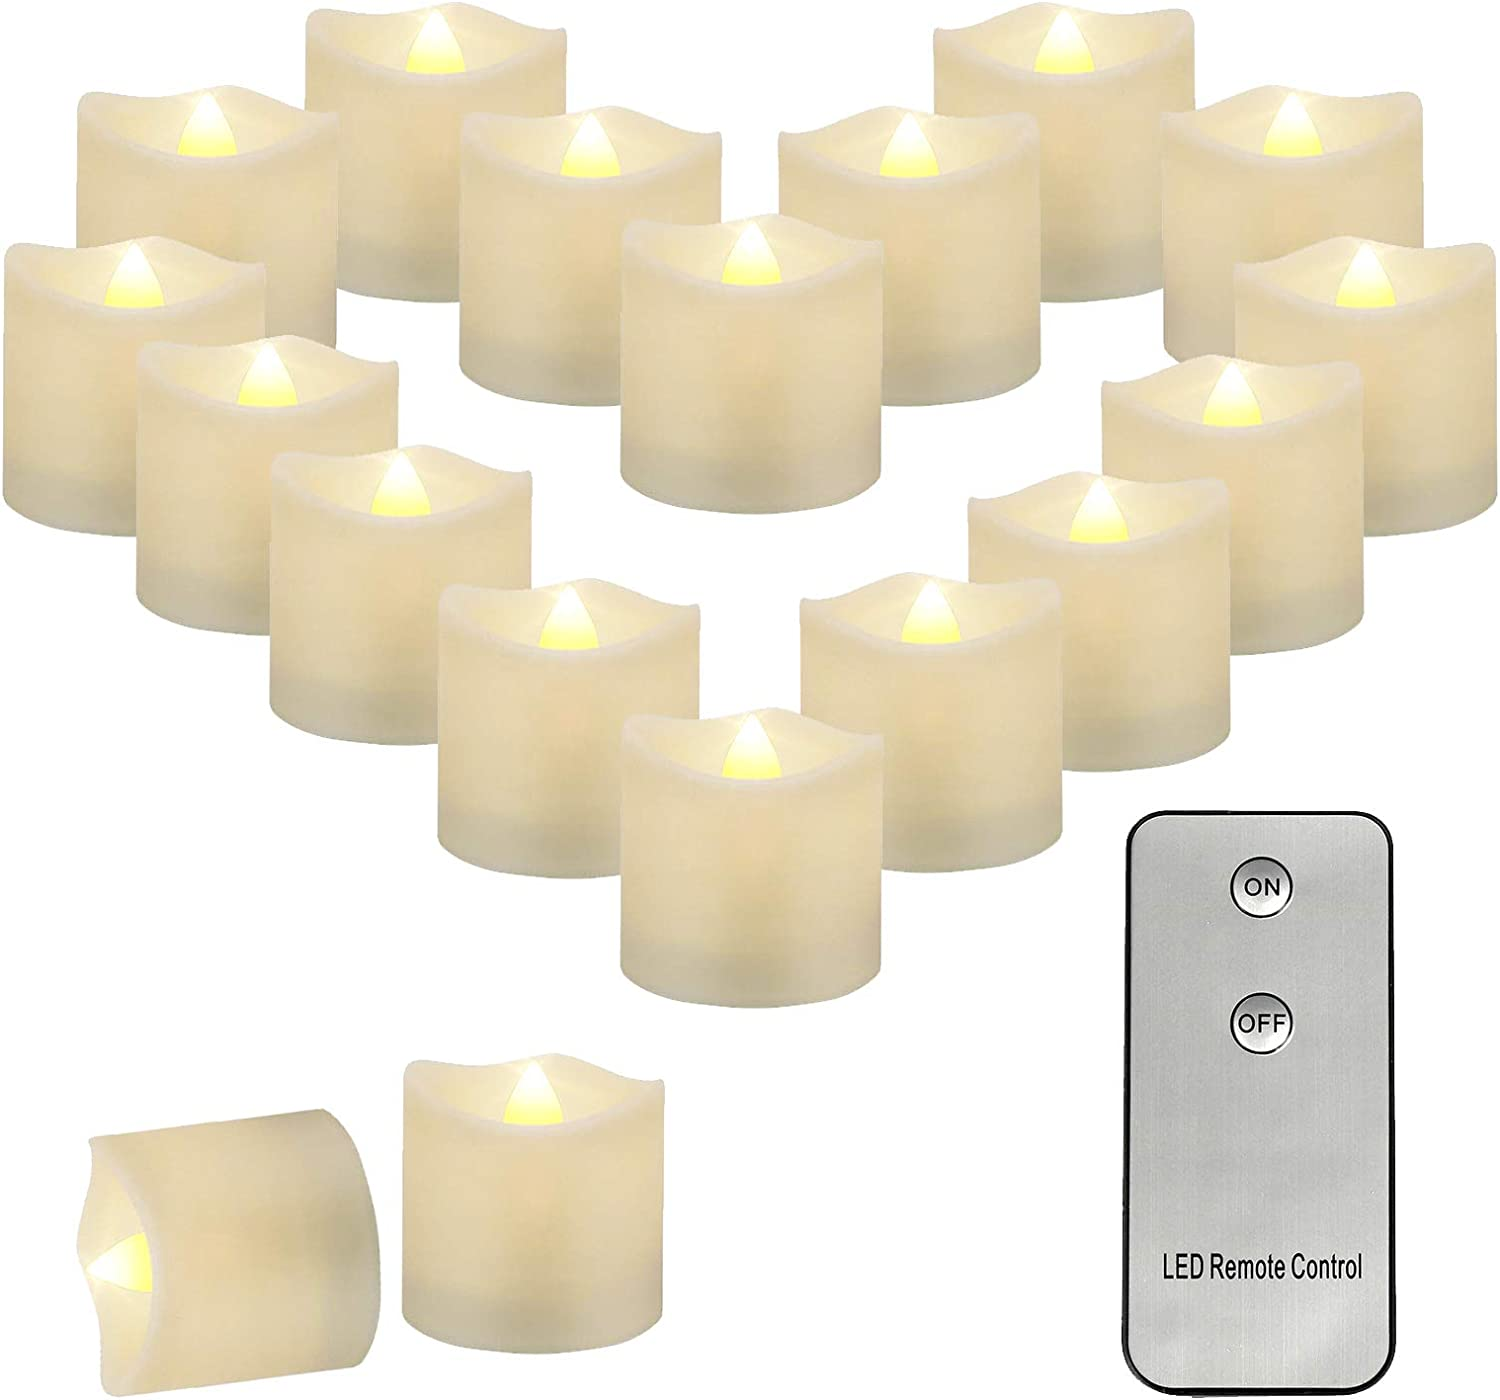 Aulaygo 12pcs LED Flameless Tealight Candles with Remote Control Warm White Battery Powered Tea Lights Realistic Fake Candles for Christmas Church Home Decor Theme Party Wedding Birthday